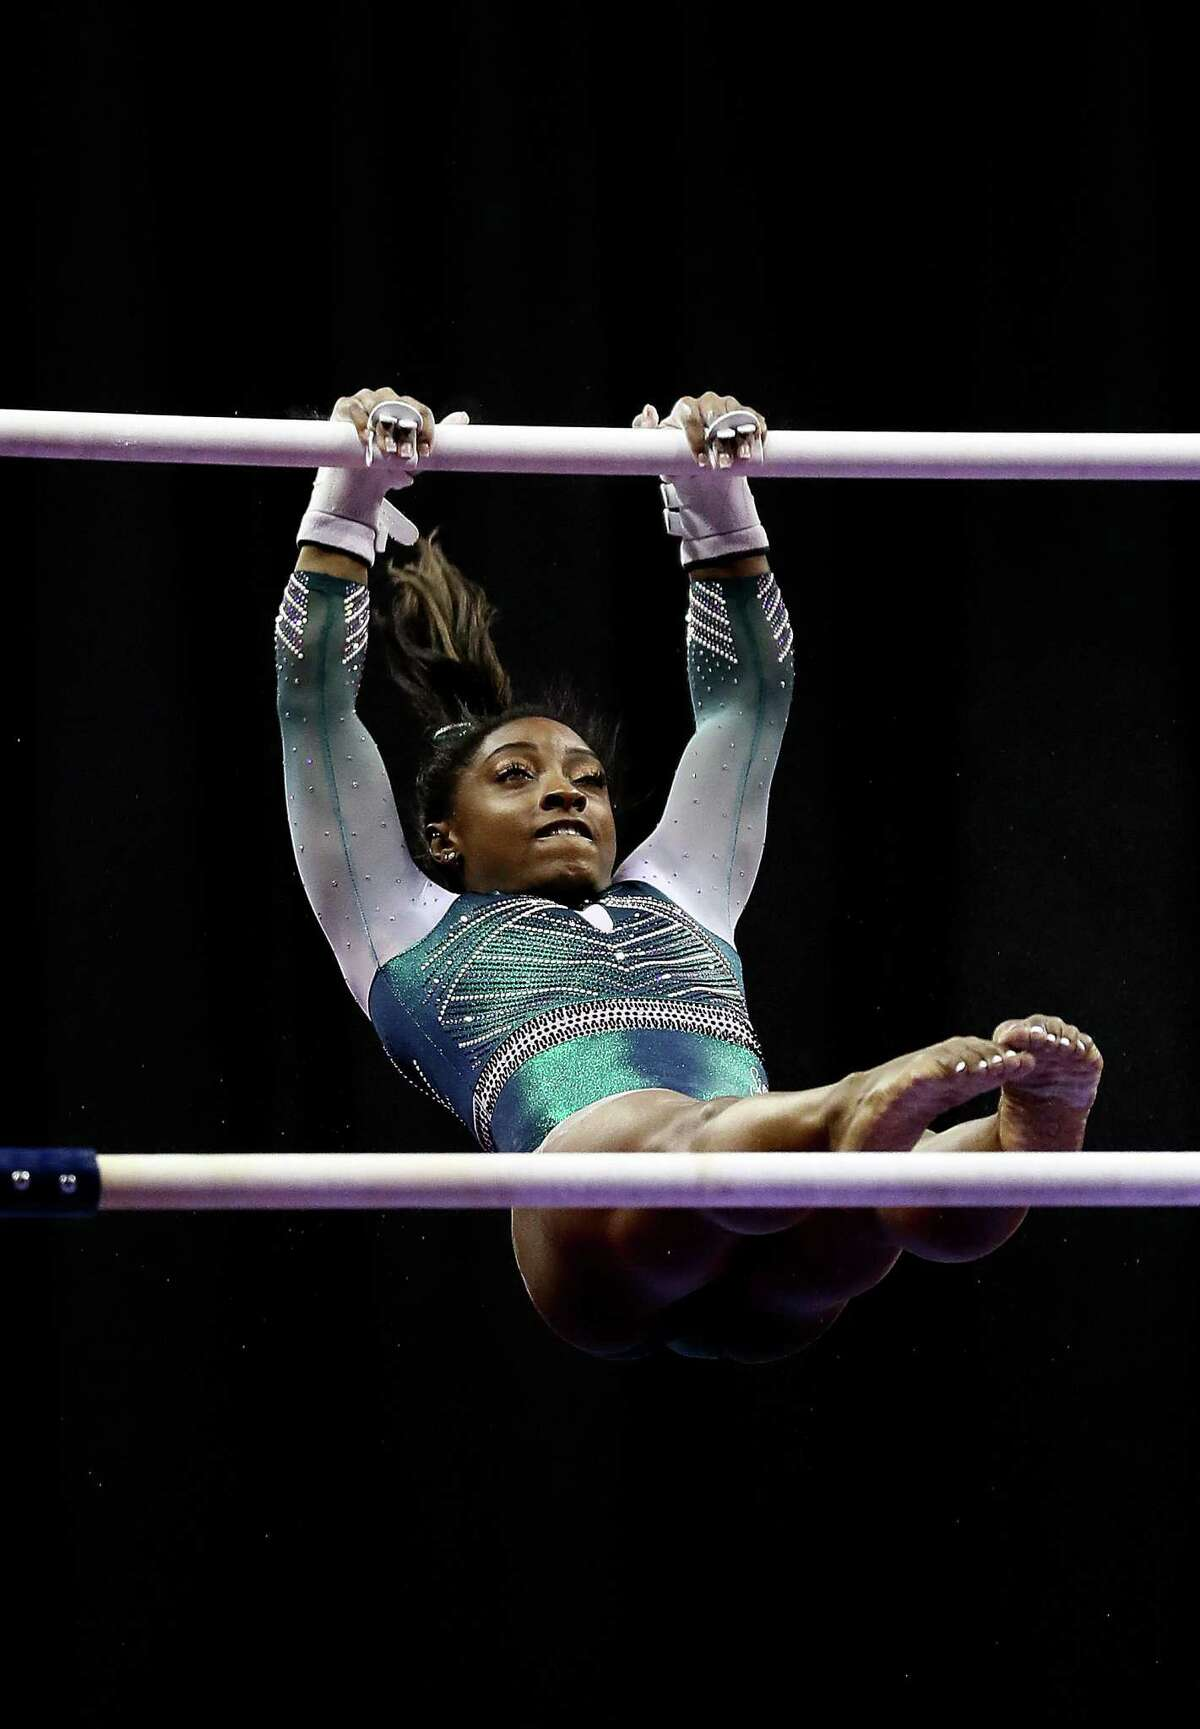 Simone Biles competes on the uneven bars during the Senior Women's competition of the 2019 U.S. Gymnastics Championships at the Sprint Center on August 09, 2019 in Kansas City, Missouri.